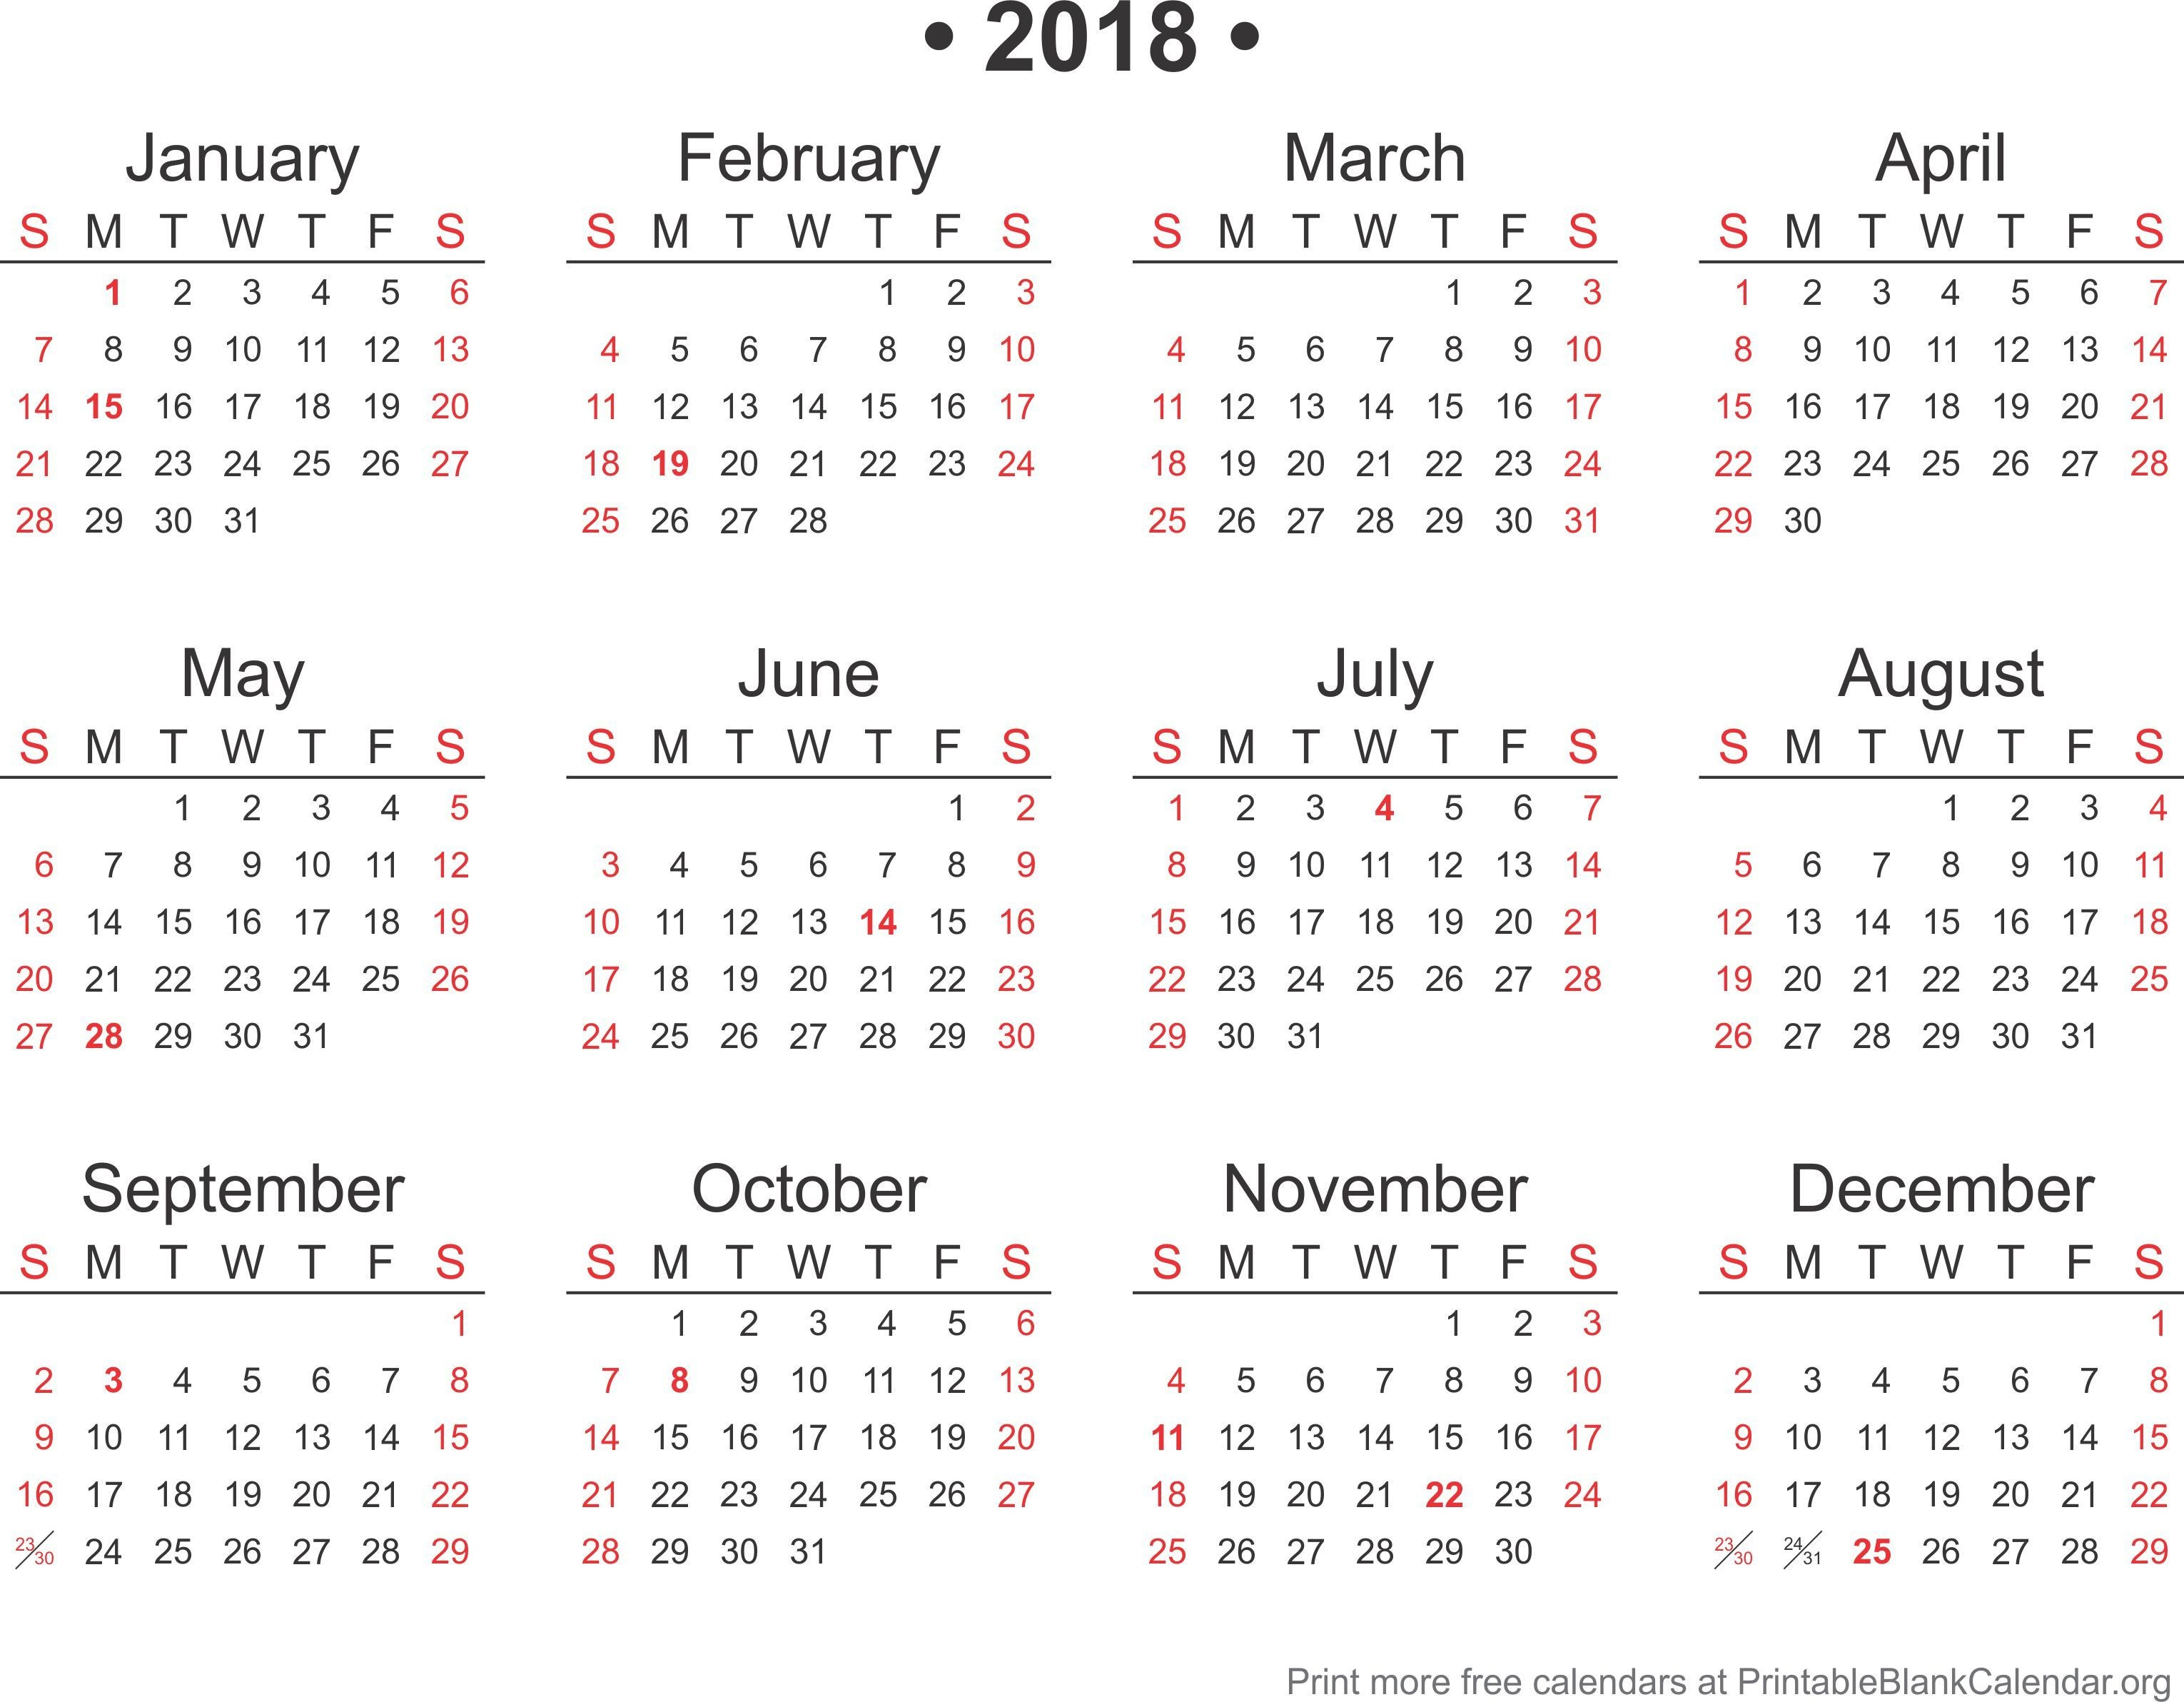 2018 Free Annual Calendar Template Printable Blank Org Showy Mini in Blank Printable Mini Calendar